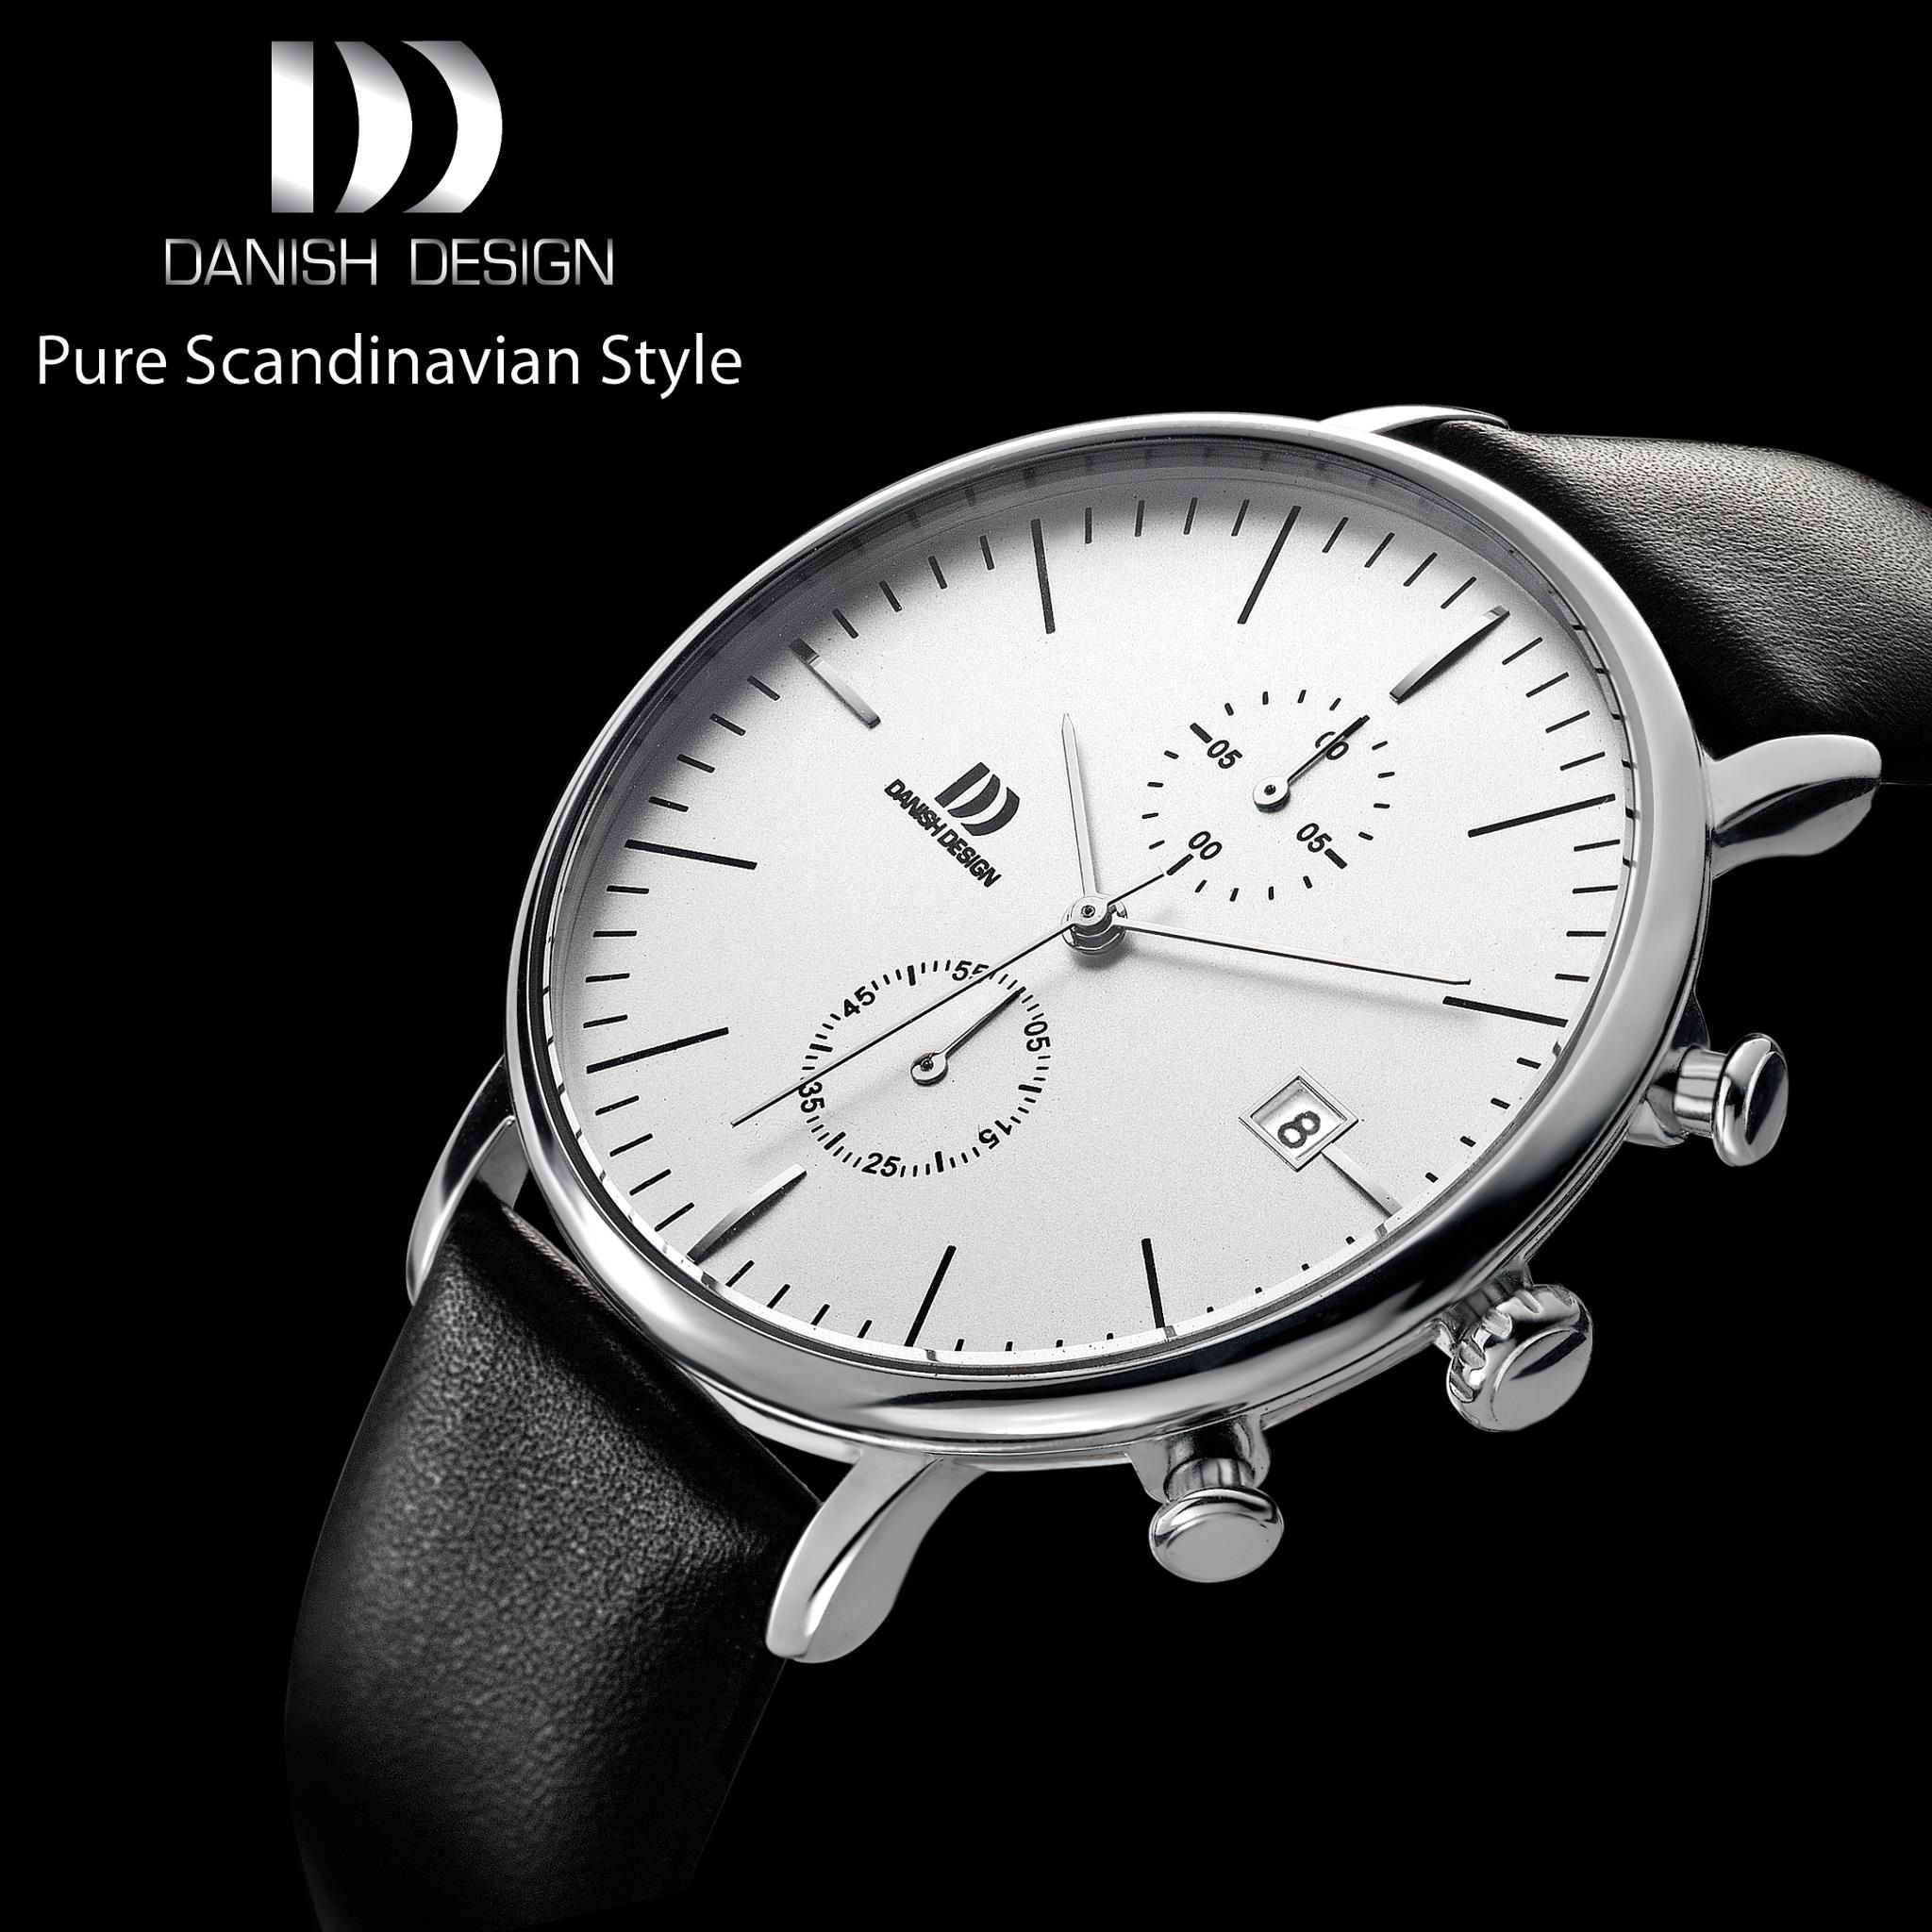 watch of denmark fashion facette by stainless as made crowdyhouse in on bulbul design part shop steel designed watches